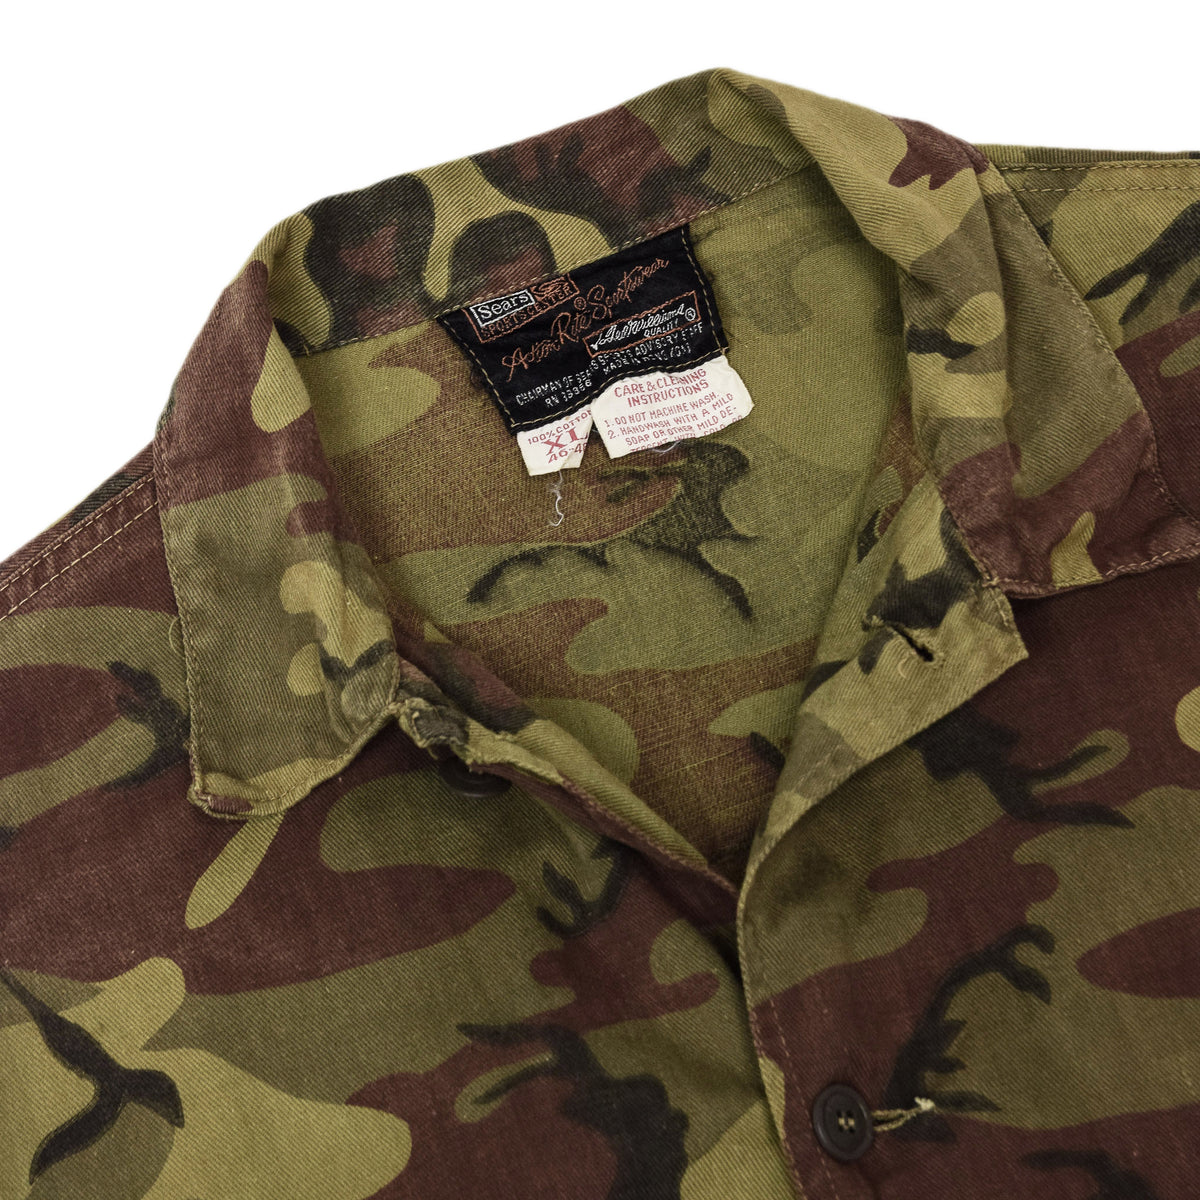 Vintage Sears Woodland Camo Cotton Hunting Shirt Jacket XL collar